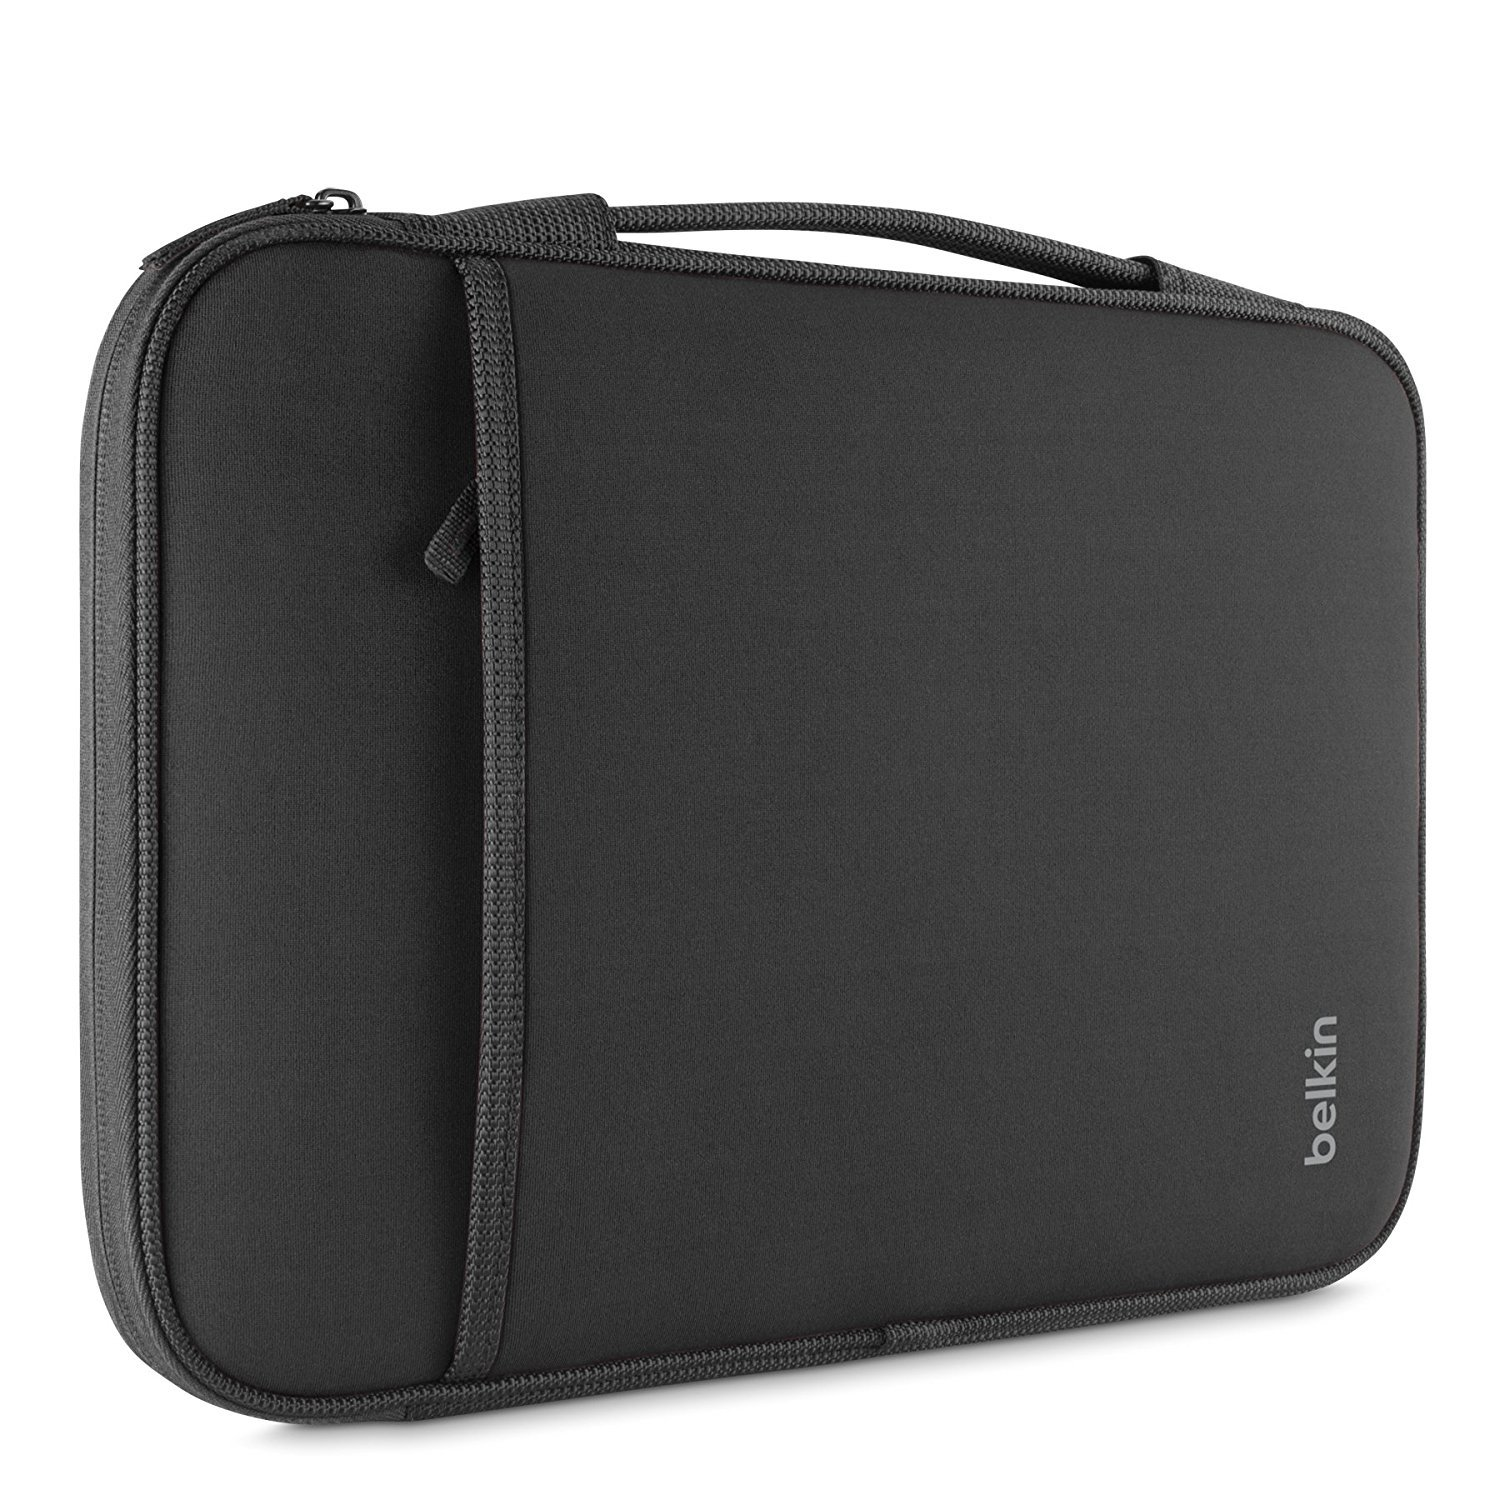 """Belkin Sleeve for Laptop and Other 11"""" Devices (Black) image"""